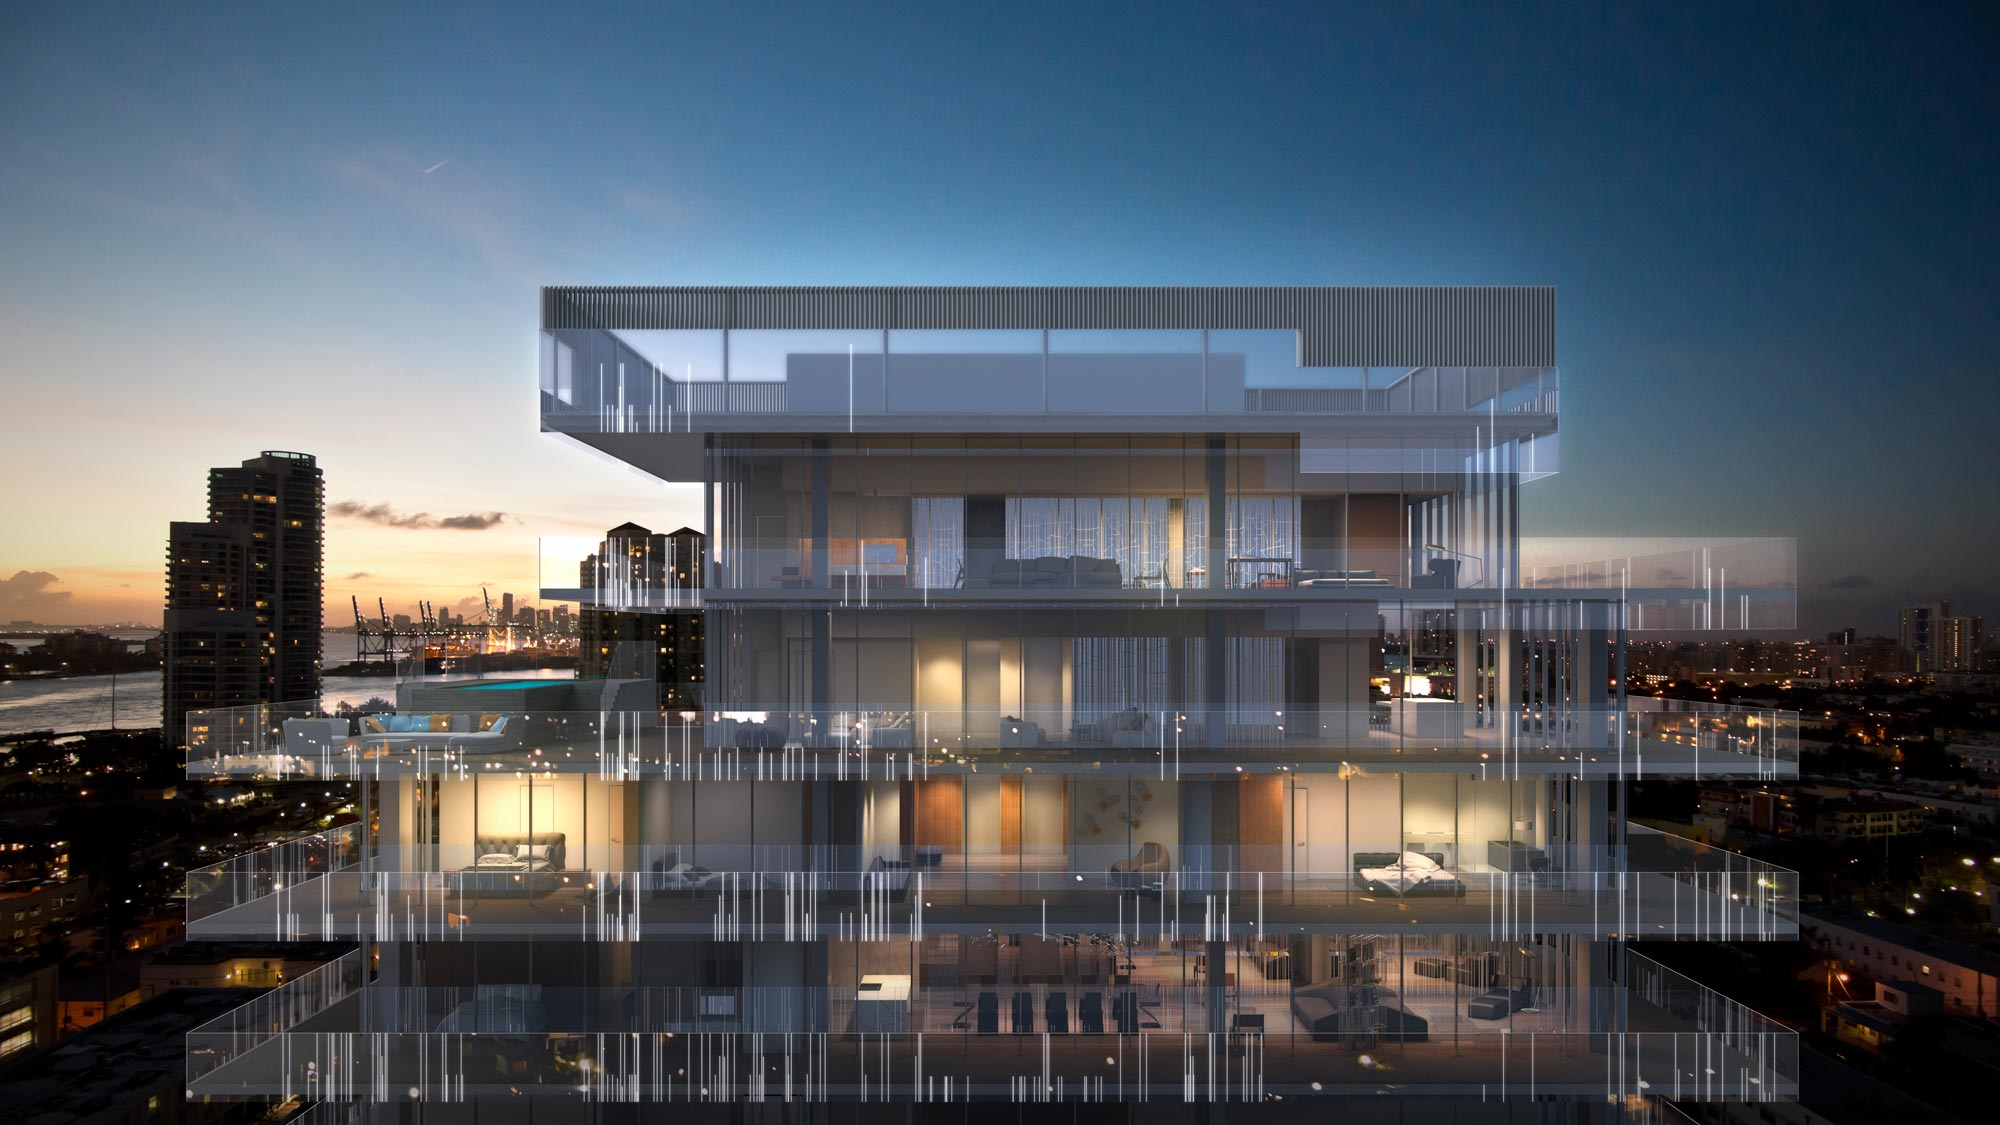 Glass miami beach ultra luxury beachfront condos on miami beach for sale